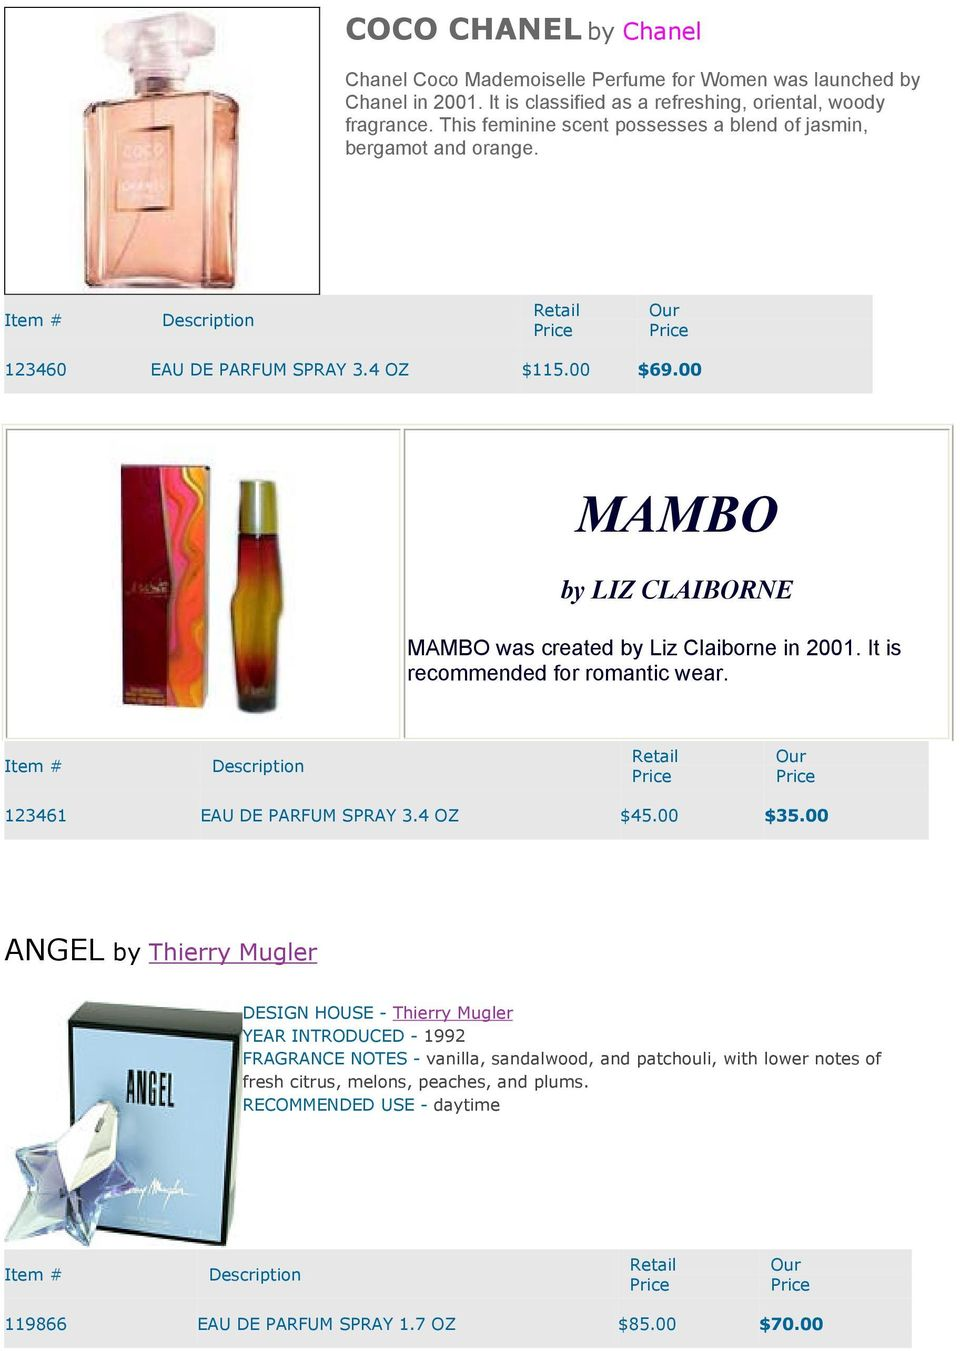 00 MAMBO by LIZ CLAIBORNE MAMBO was created by Liz Claiborne in 2001. It is recommended for romantic wear. 123461 EAU DE PARFUM SPRAY 3.4 OZ $45.00 $35.